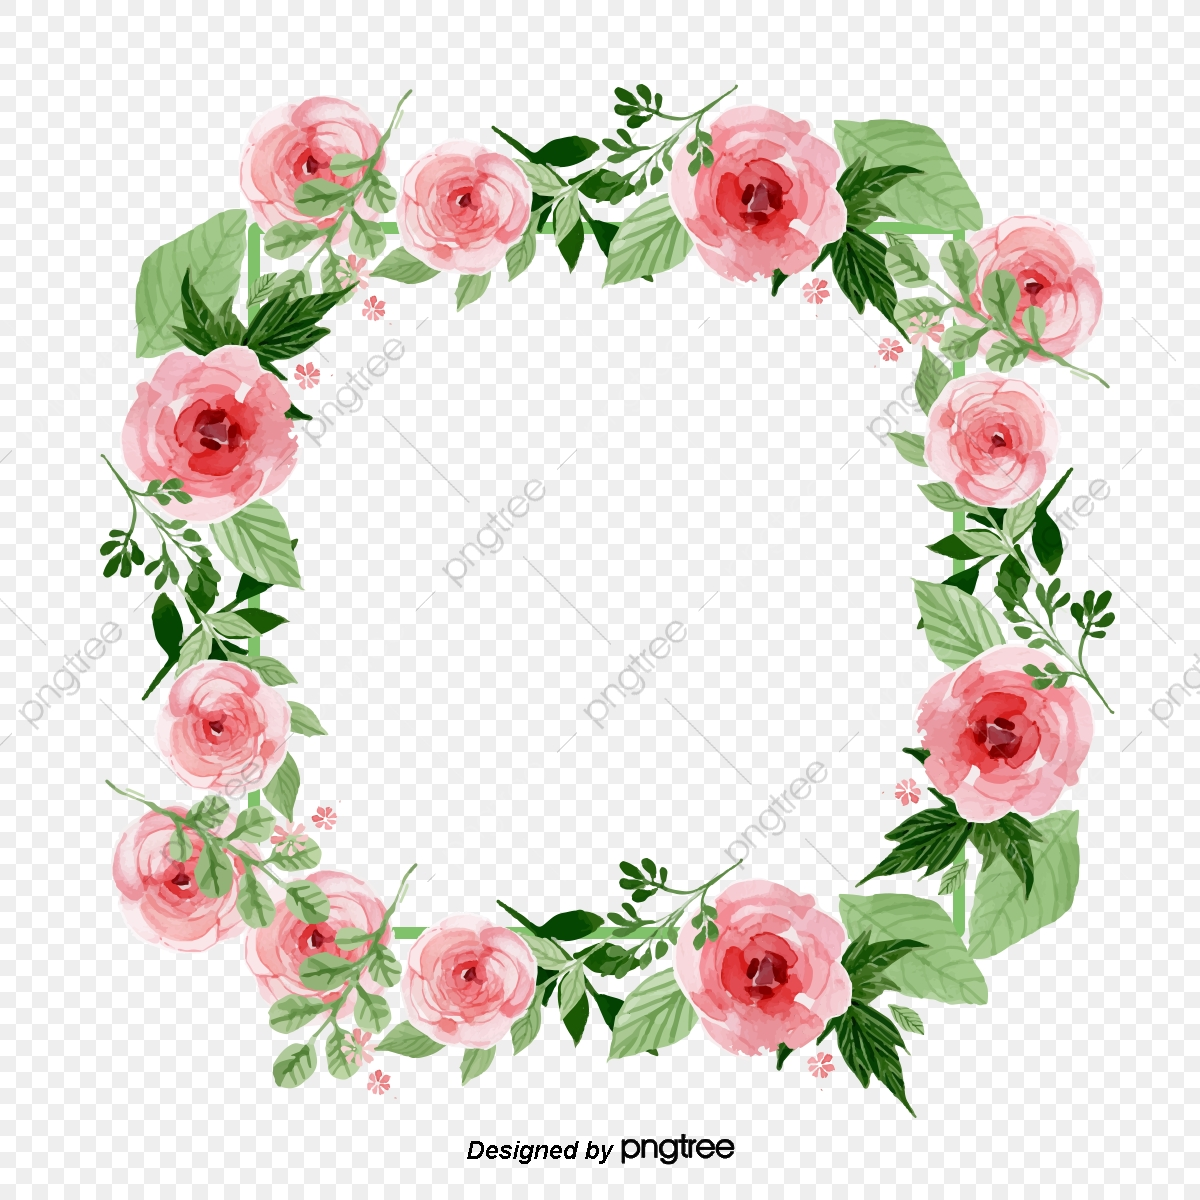 image freeuse library Flower wreath clipart. Frame square pink green